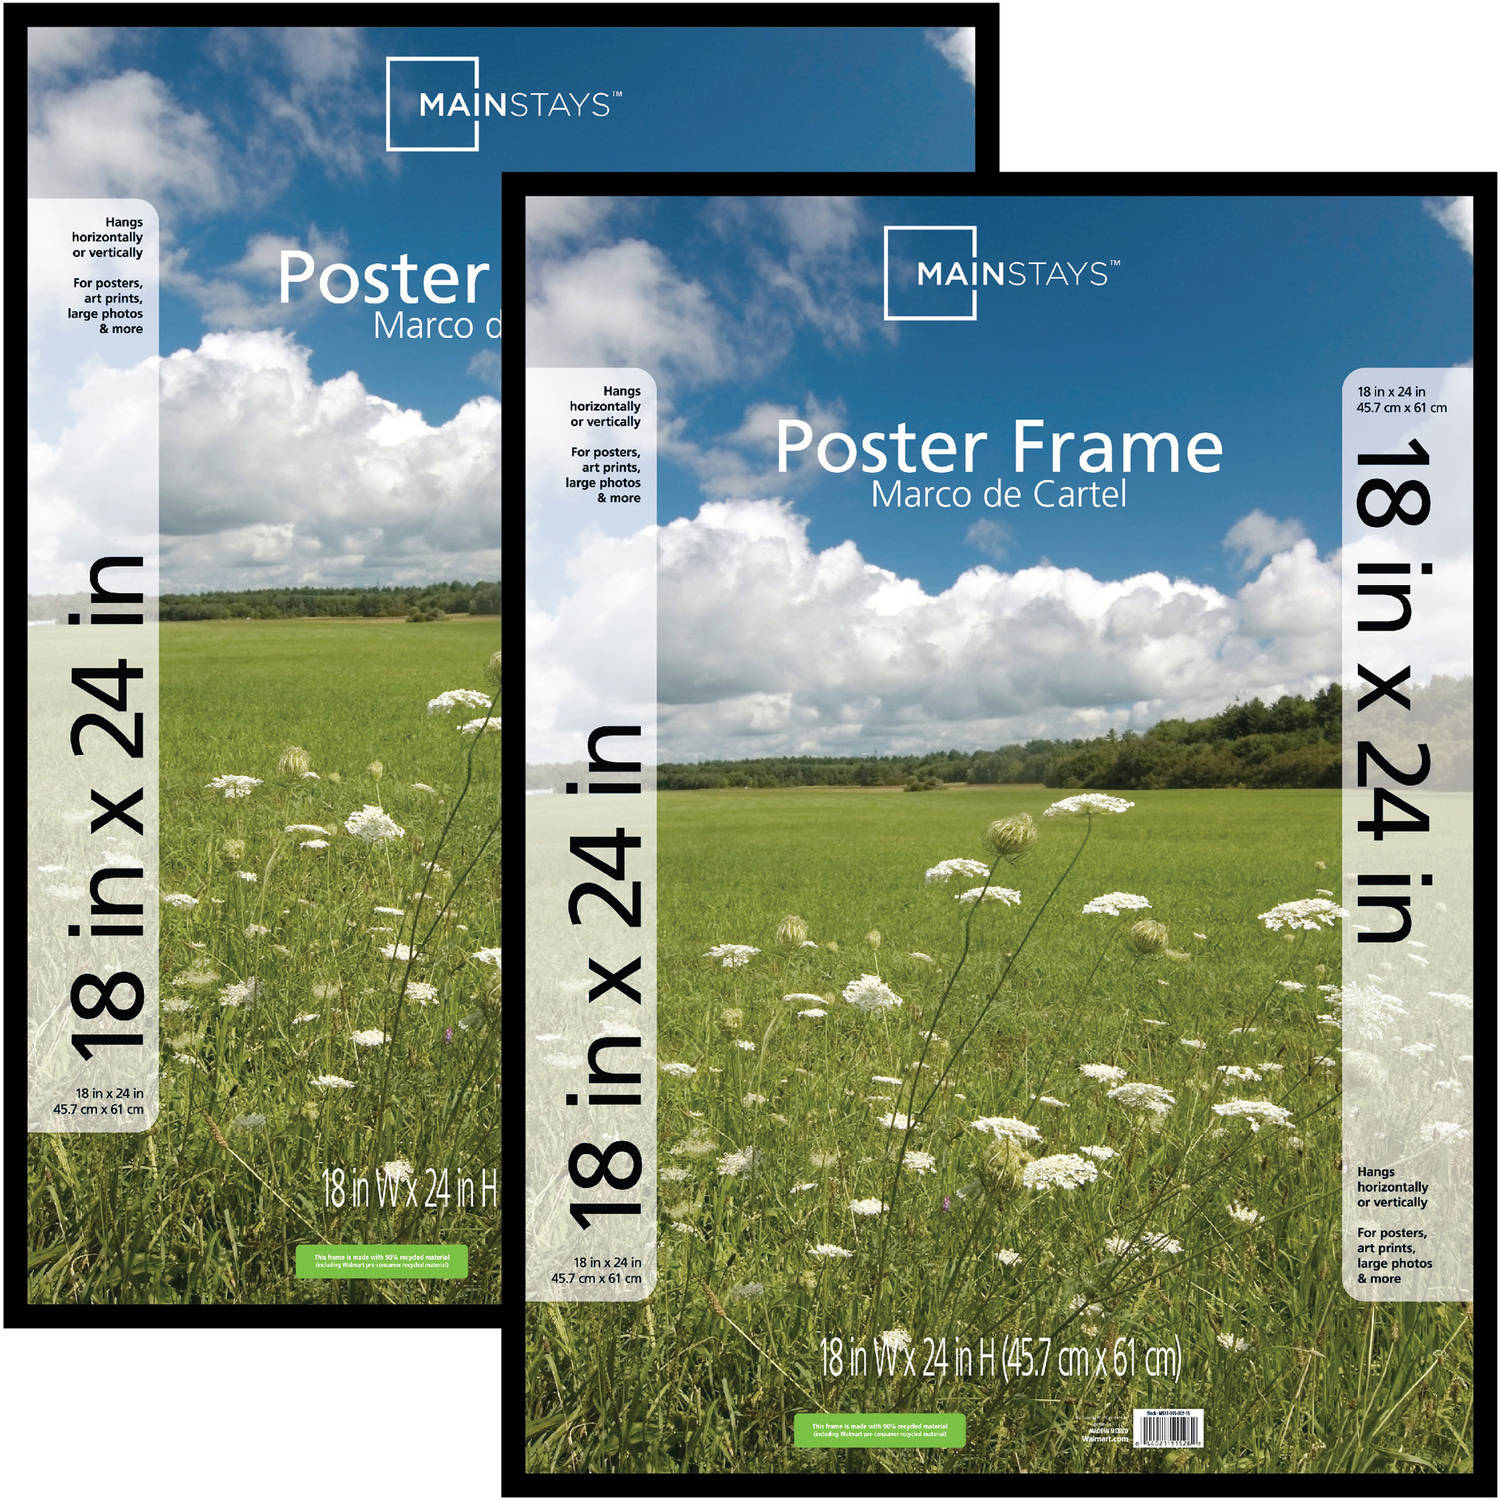 Mainstays 18x24 Basic Poster & Picture Frame, Black, Set of 2